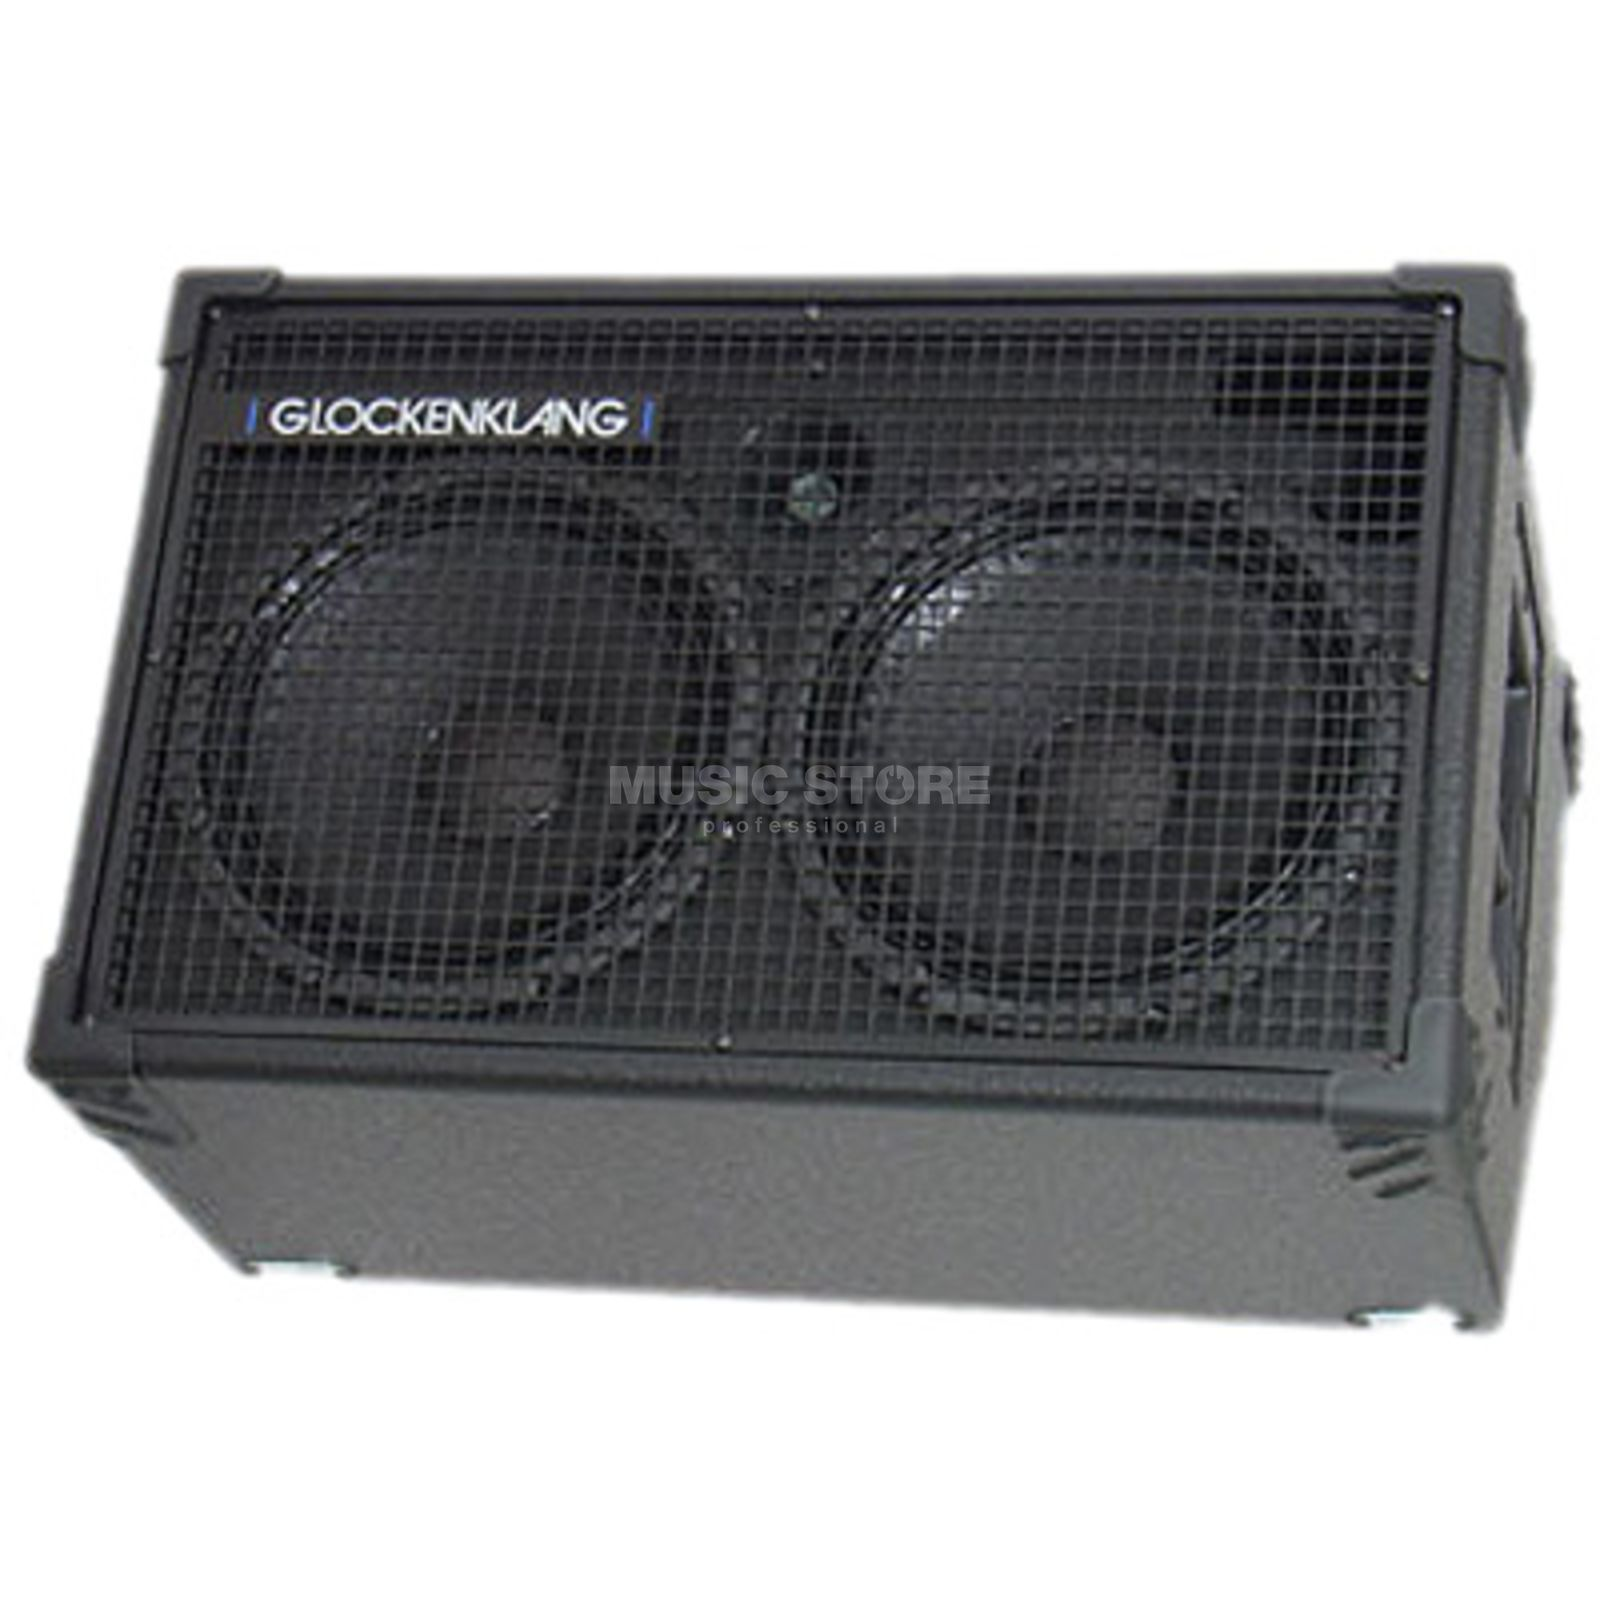 "Glockenklang Duo Wedge Box 16 Ohm 400 Watt 2x10"" Speaker +Horn Zdjęcie produktu"